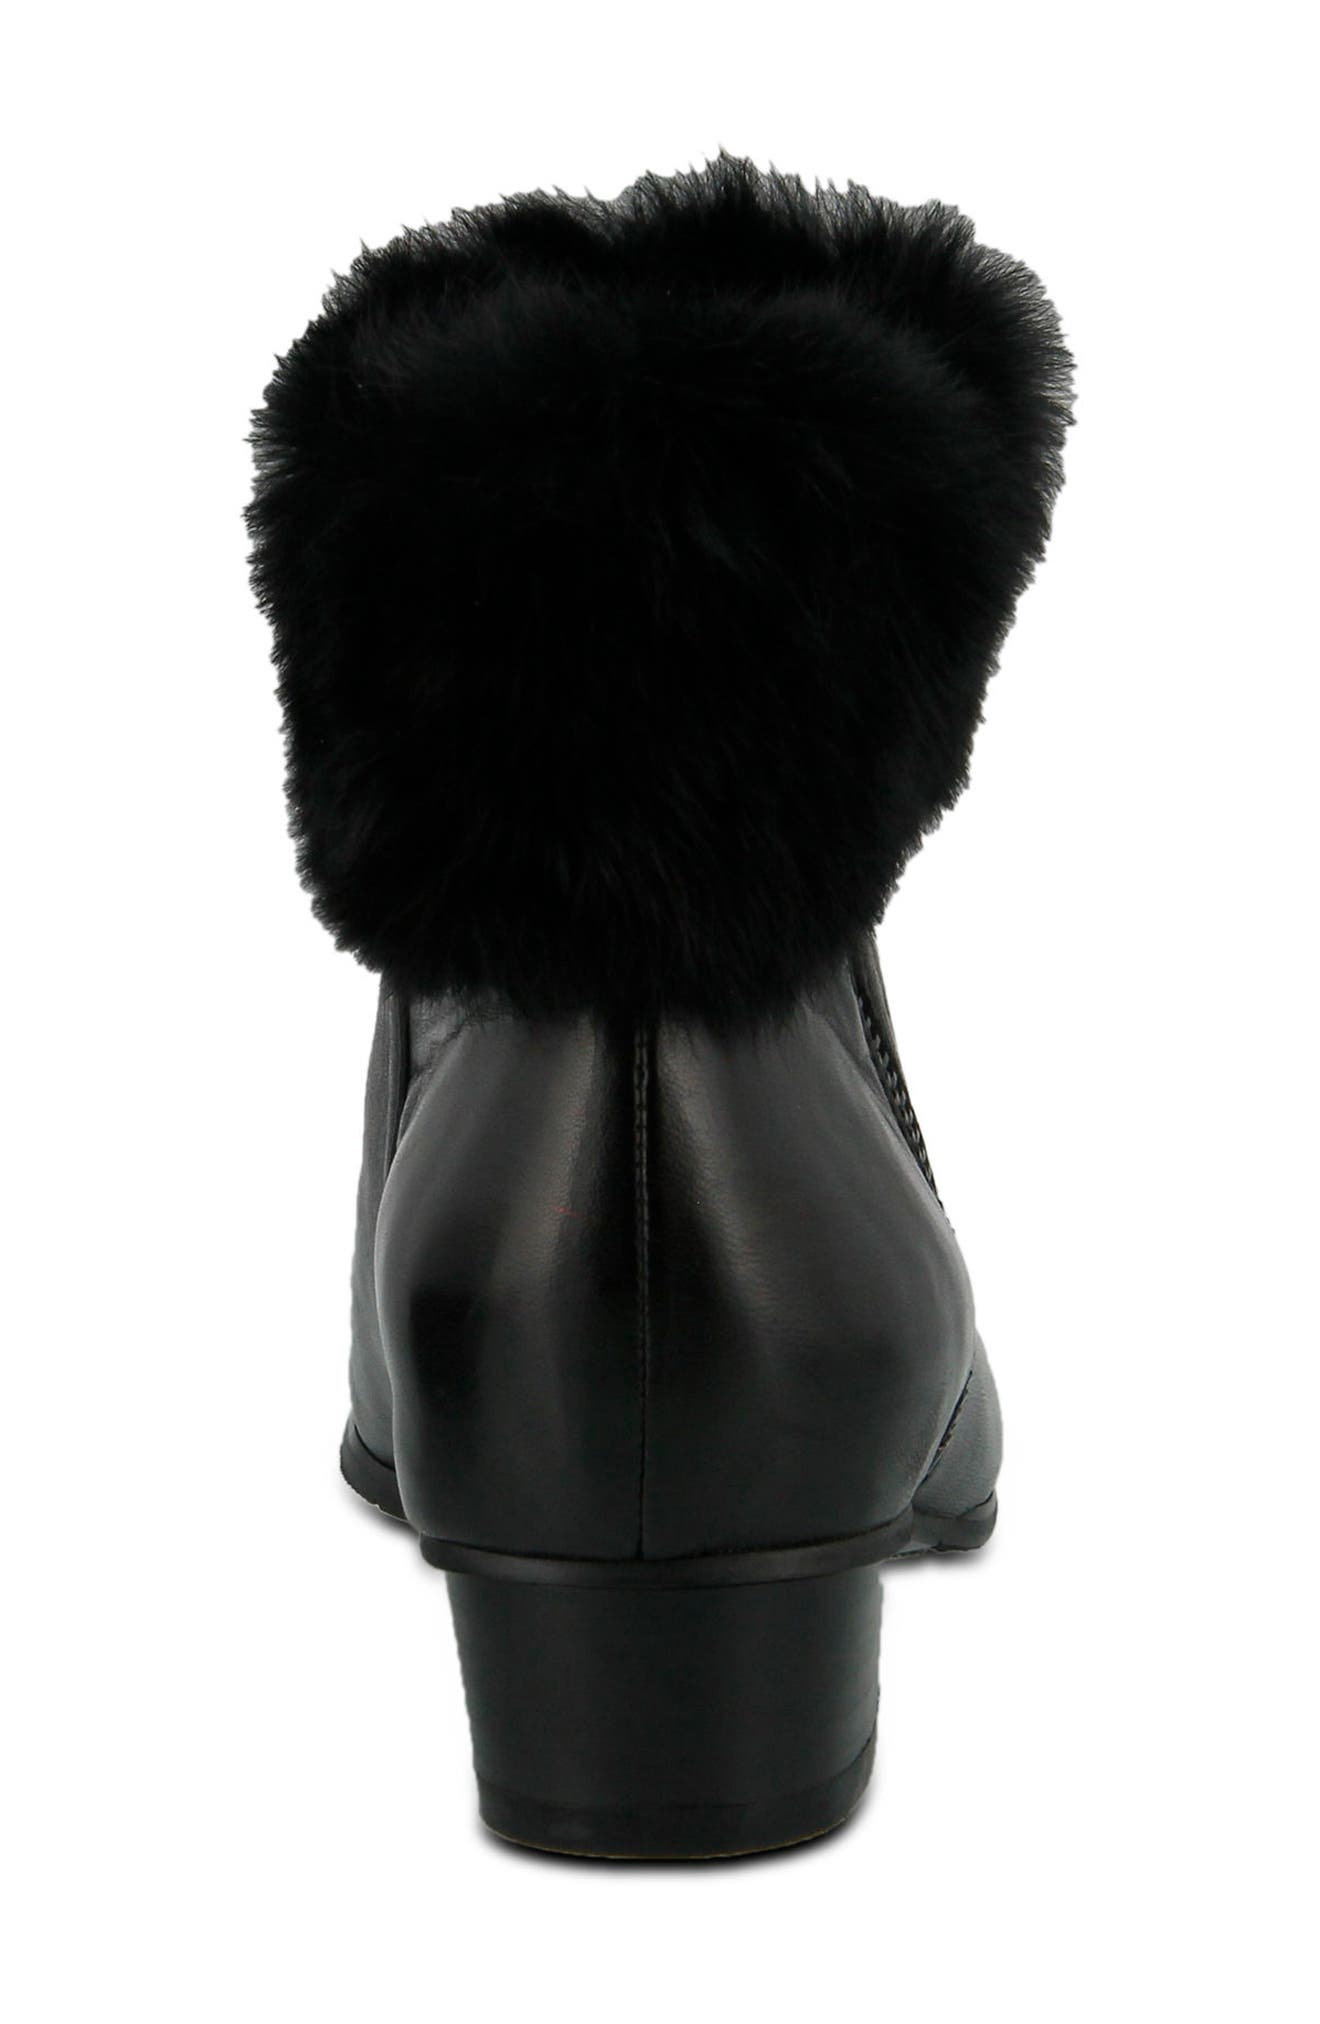 Burnside Faux Fur Trim Bootie,                             Alternate thumbnail 2, color,                             BLACK LEATHER